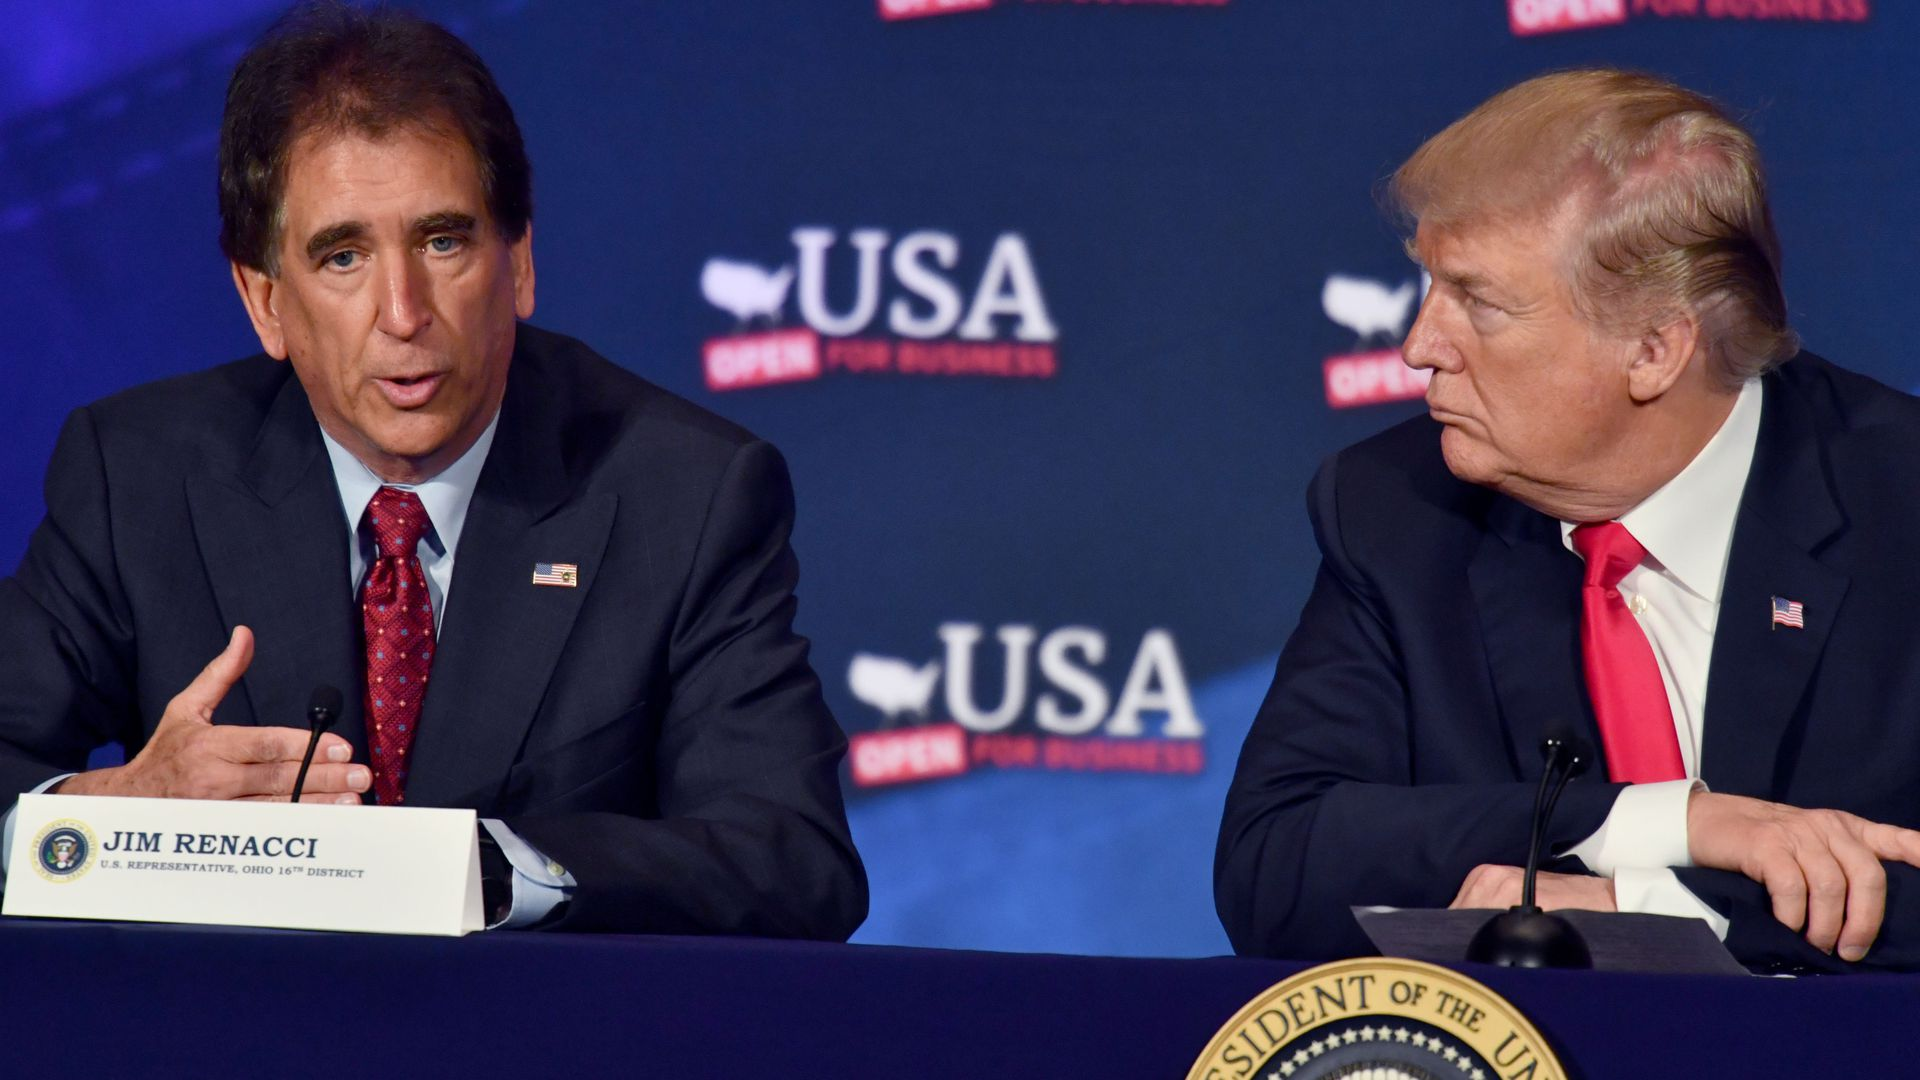 President Trump and Jim Renacci